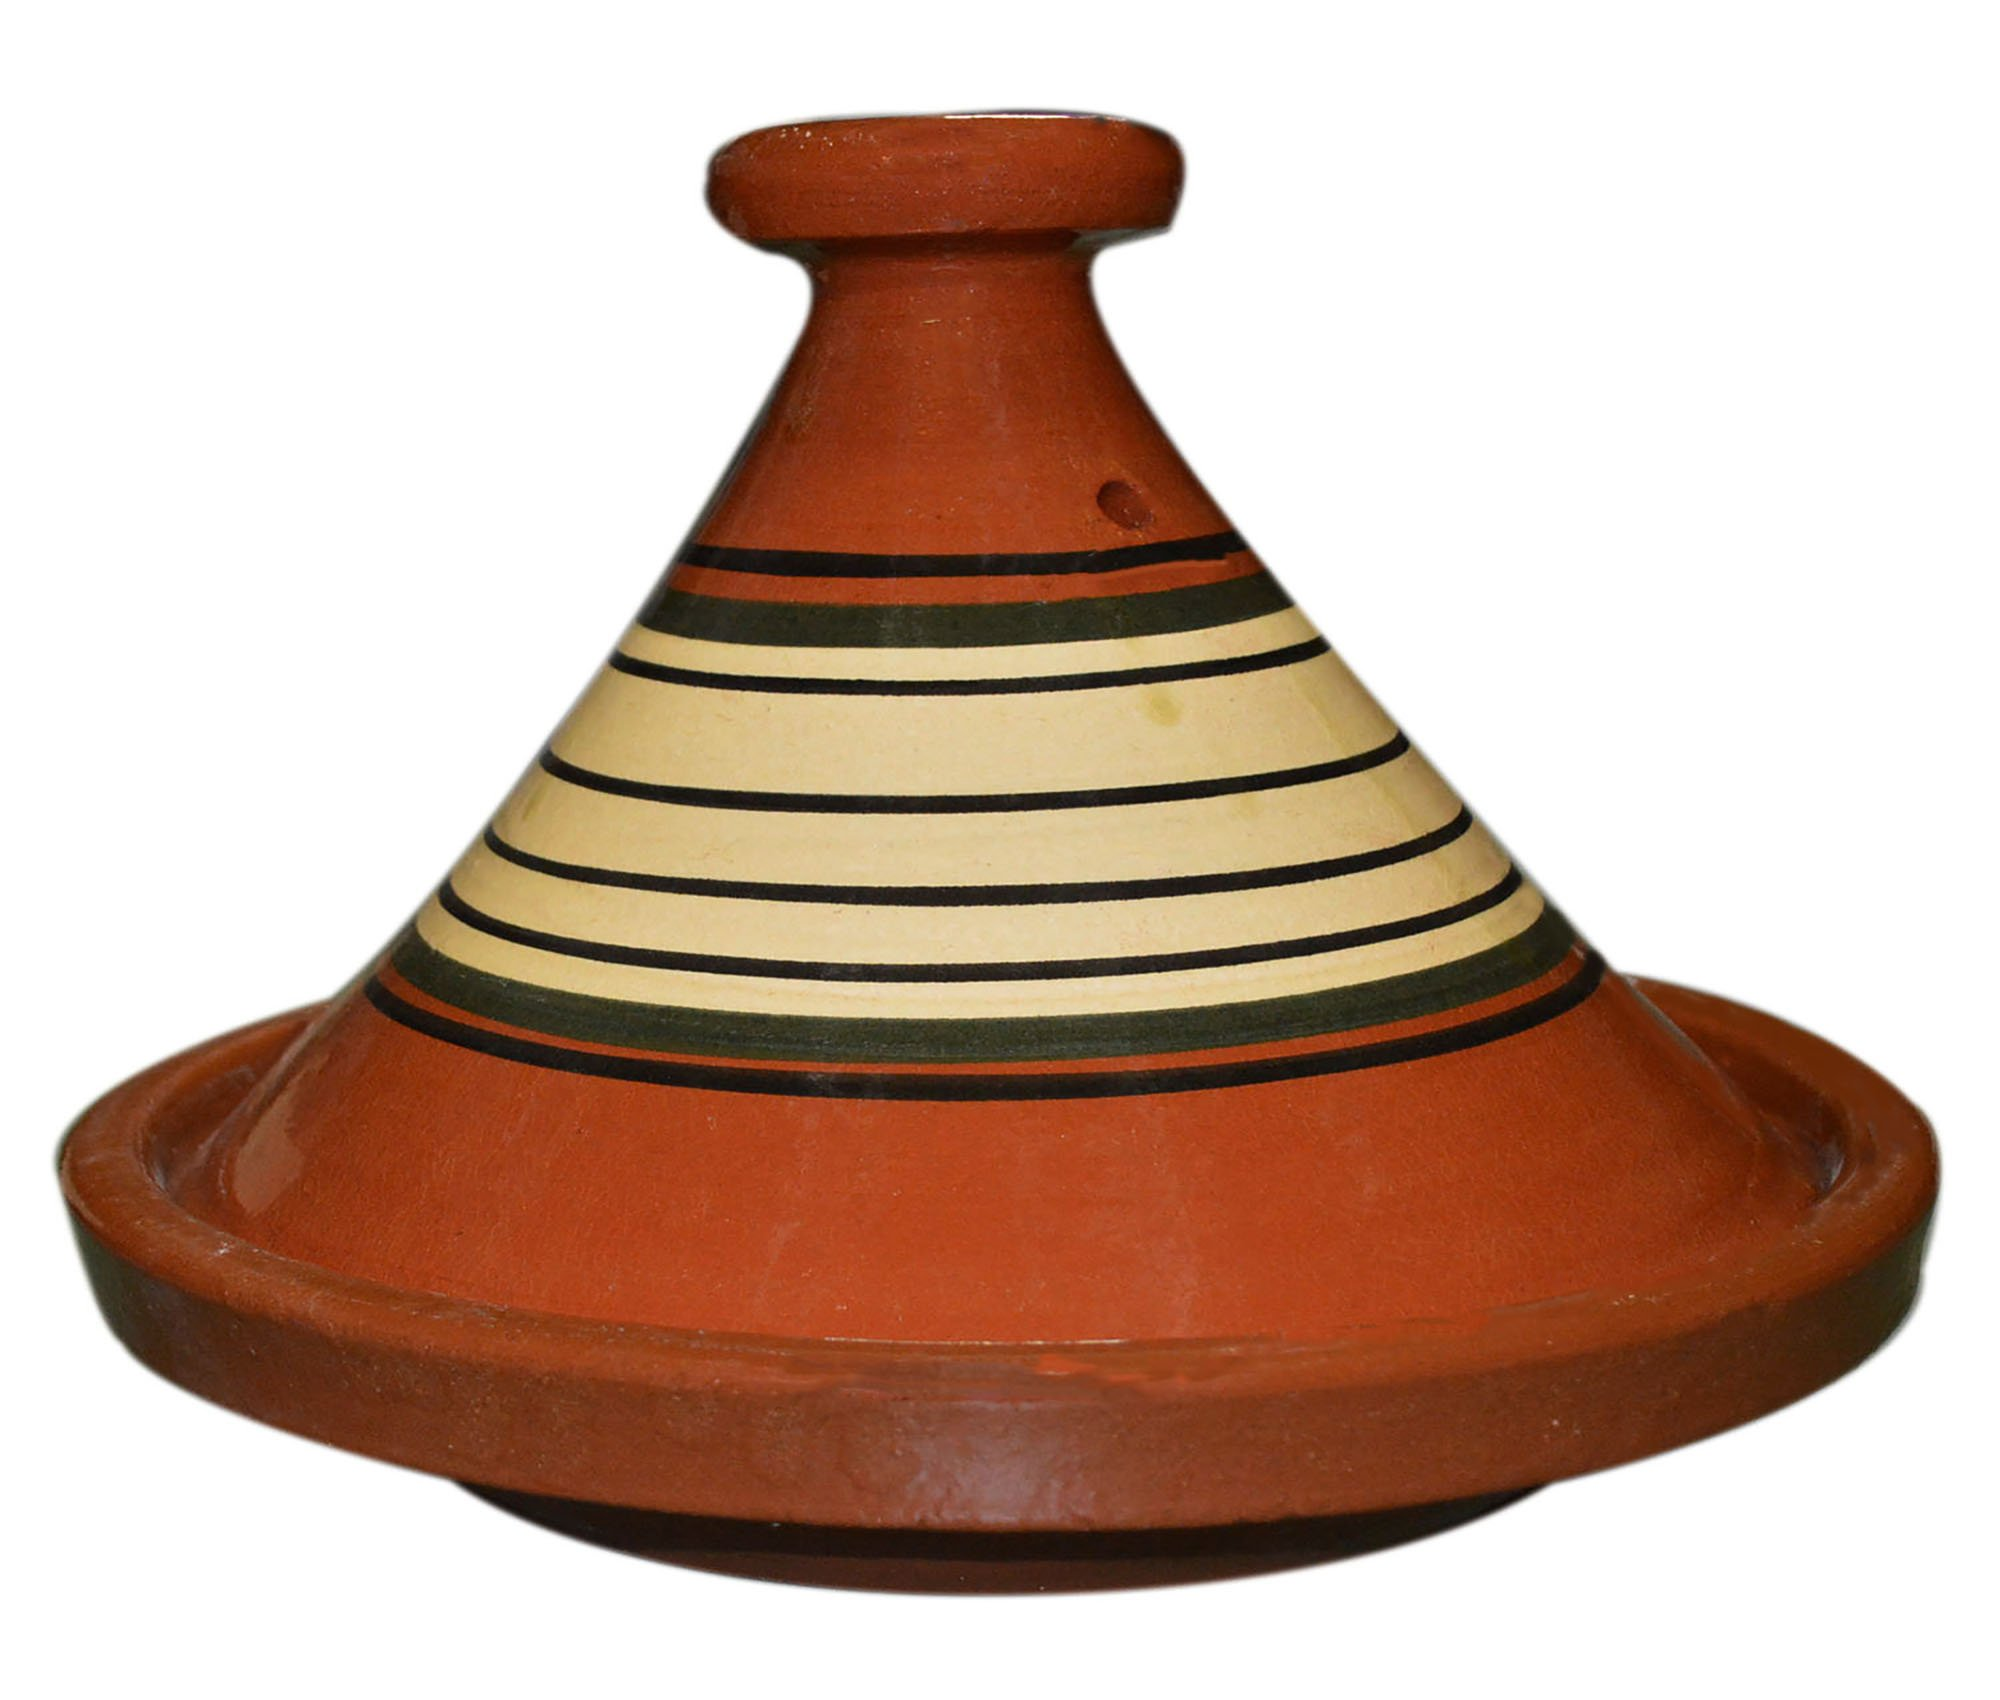 Moroccan Cooking Tagine Handmade Lead Free Safe Glazed Large 12 inches Across Traditional by Cooking Tagines